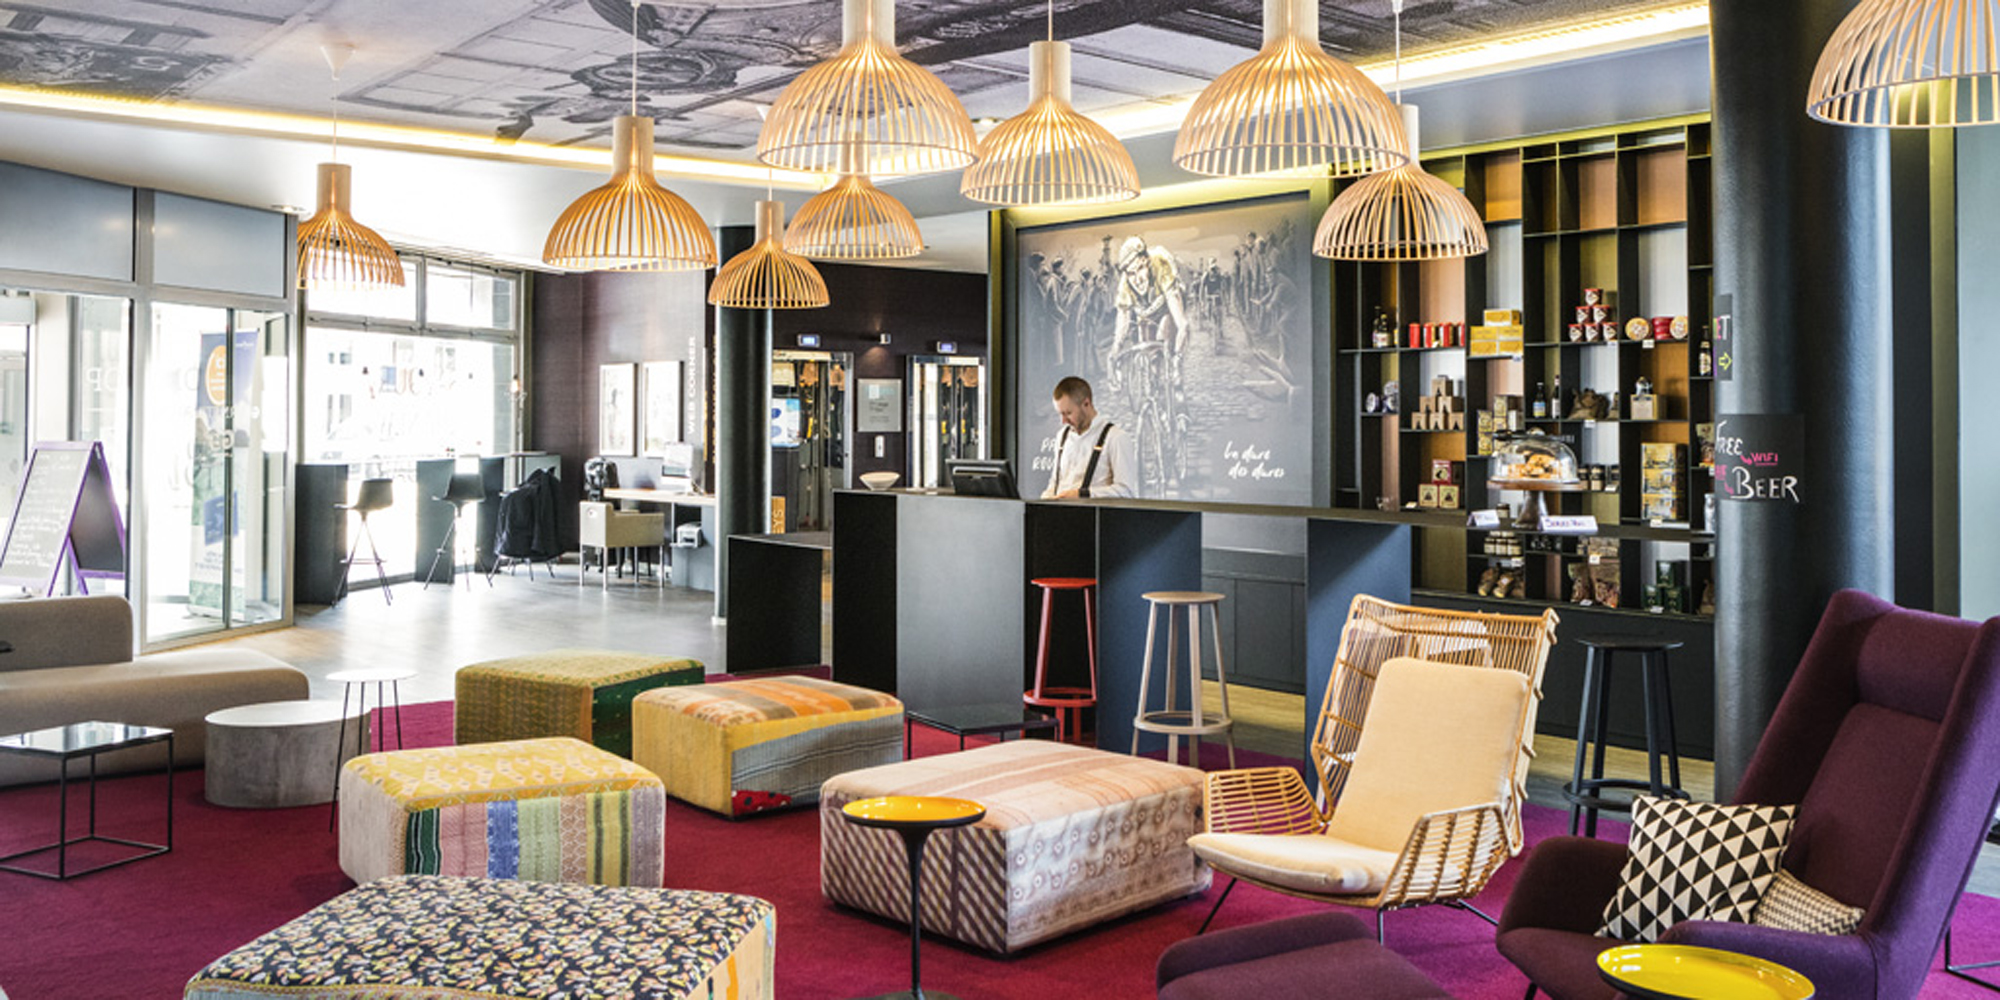 Brunch Gourmet Bar Novotel (59000 Lille)